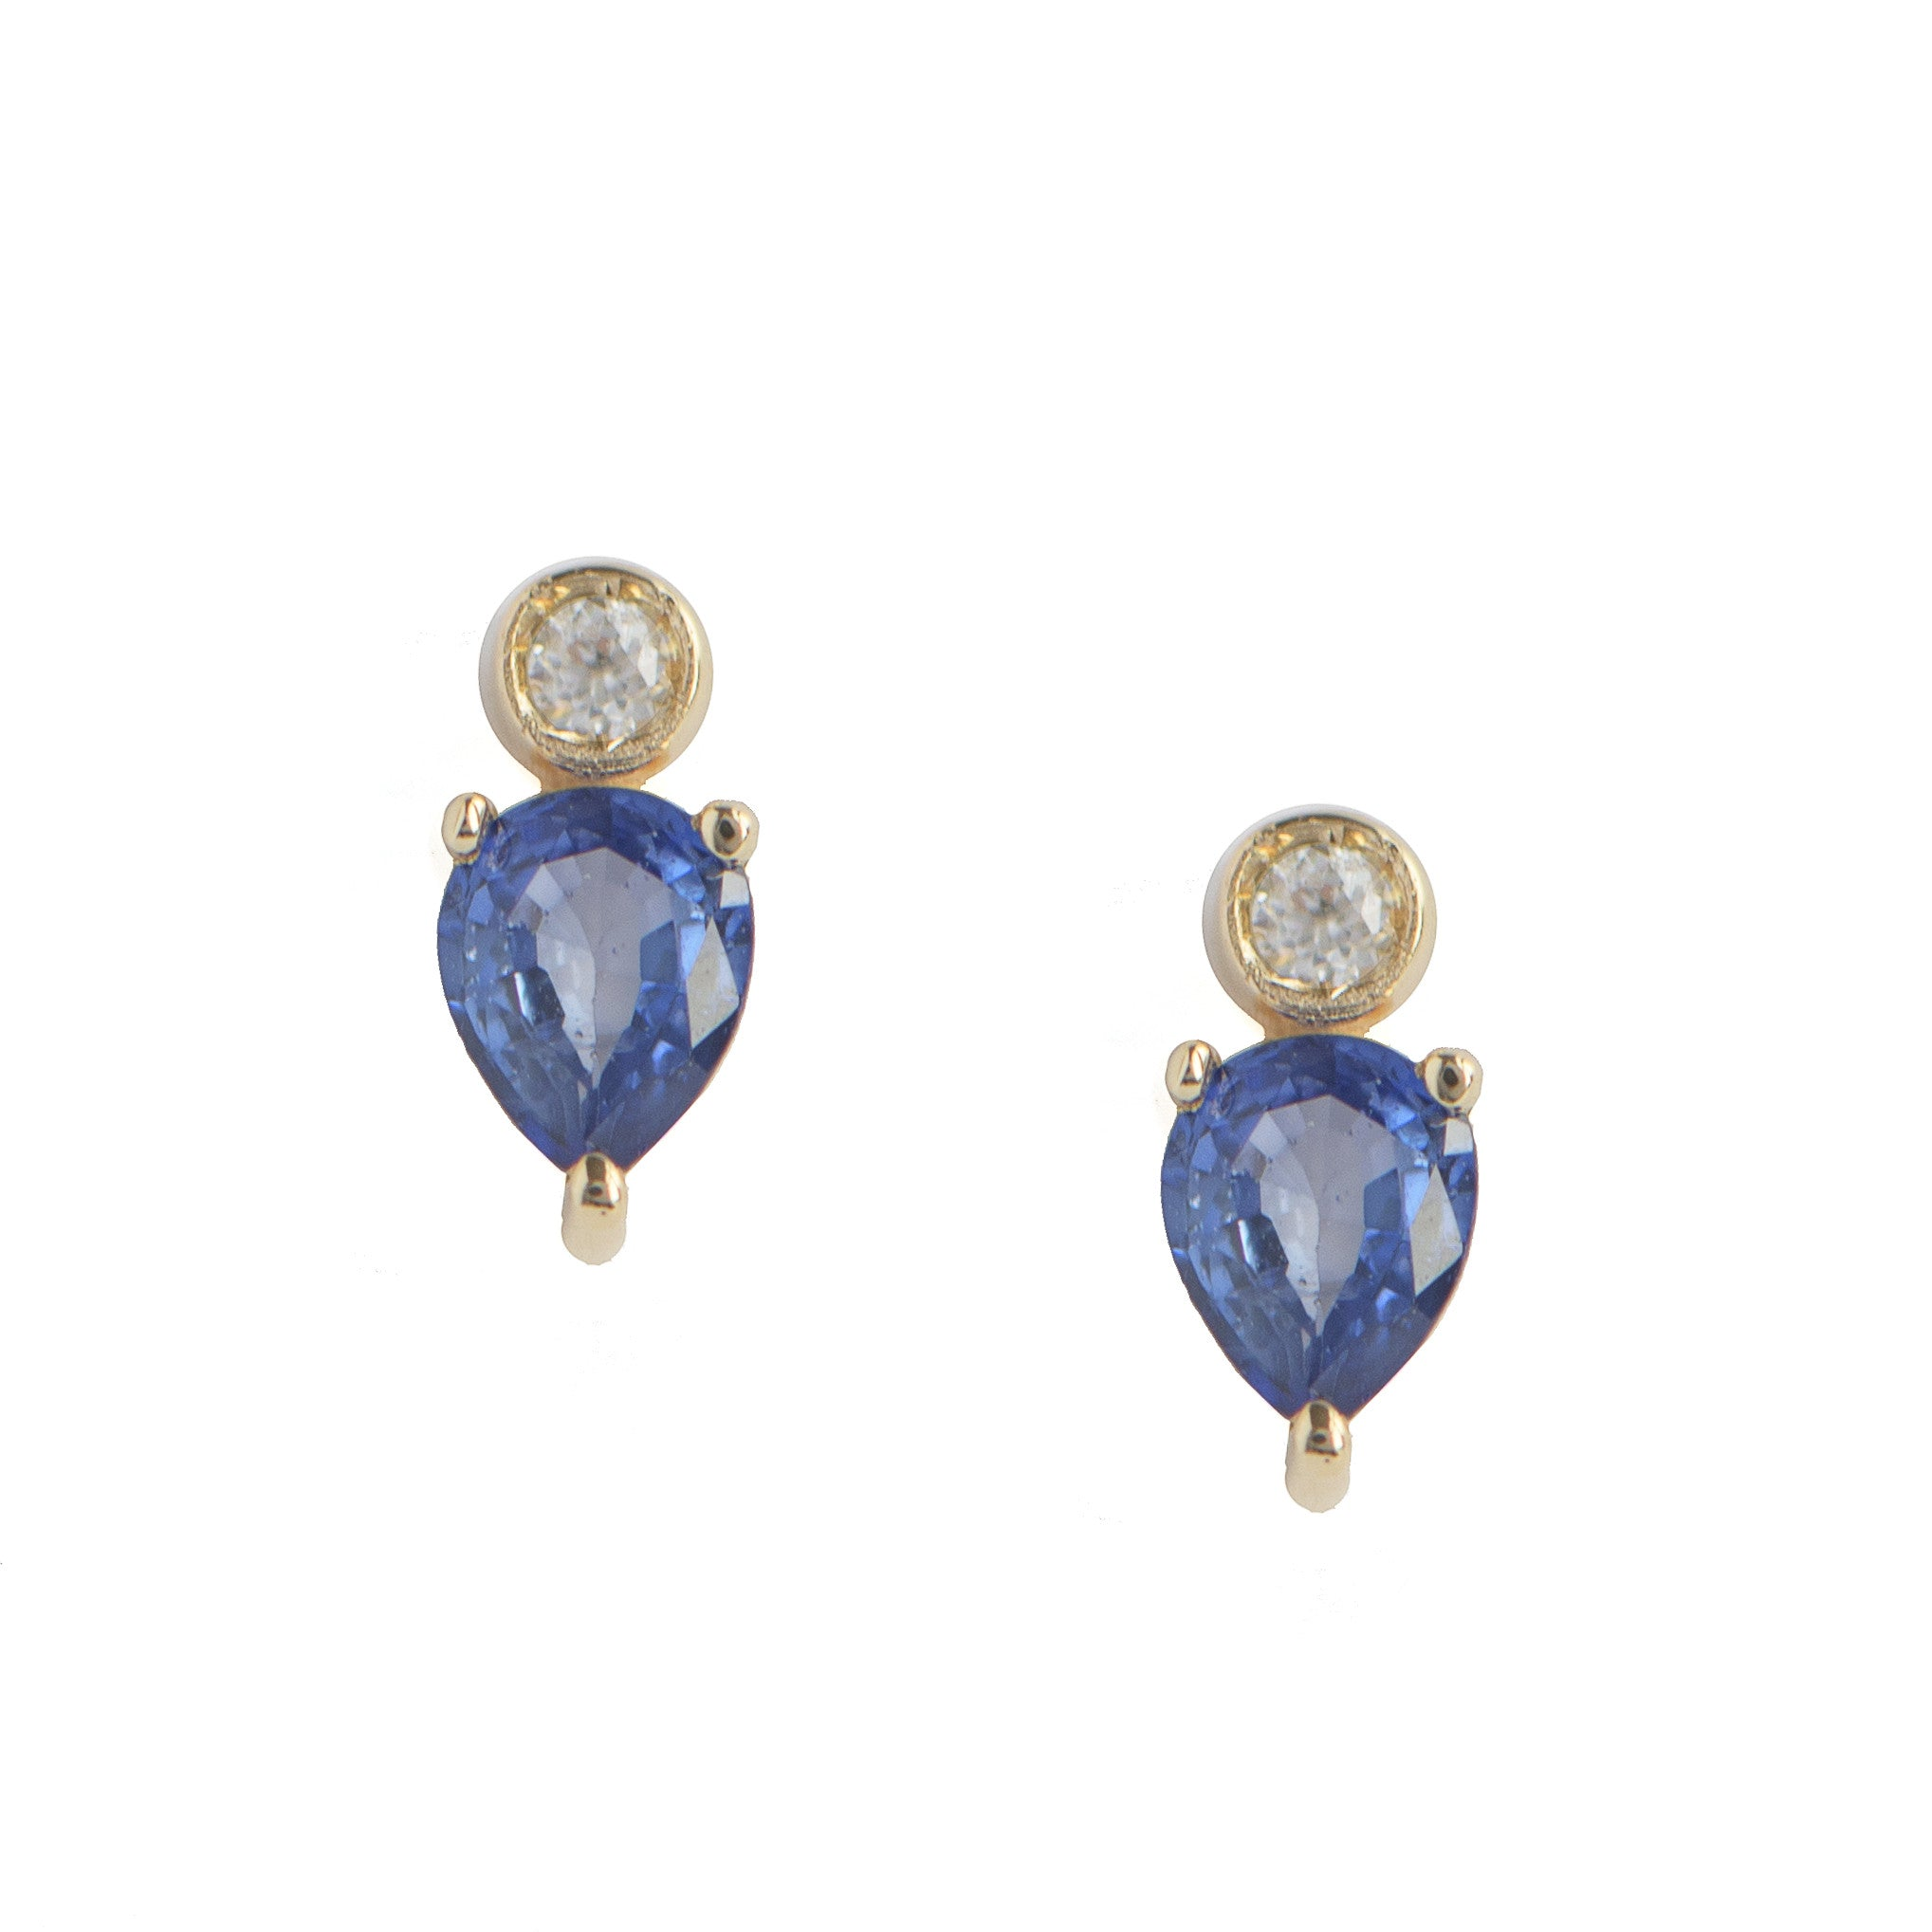 white orig earrings gold stud diamond sapphire blue shop cluster gift boxed genuine